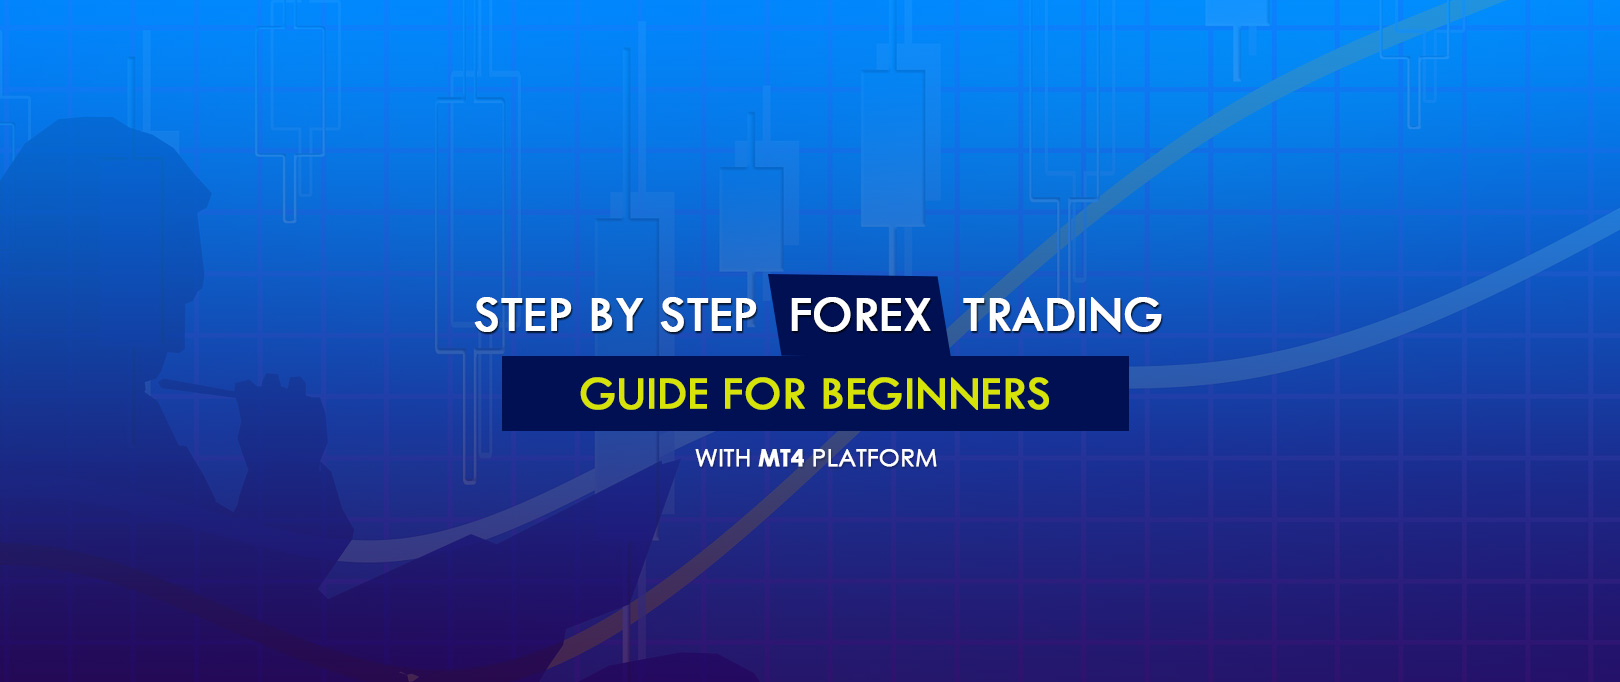 Forex Trading Guide for beginners with MT4 Forex Broker